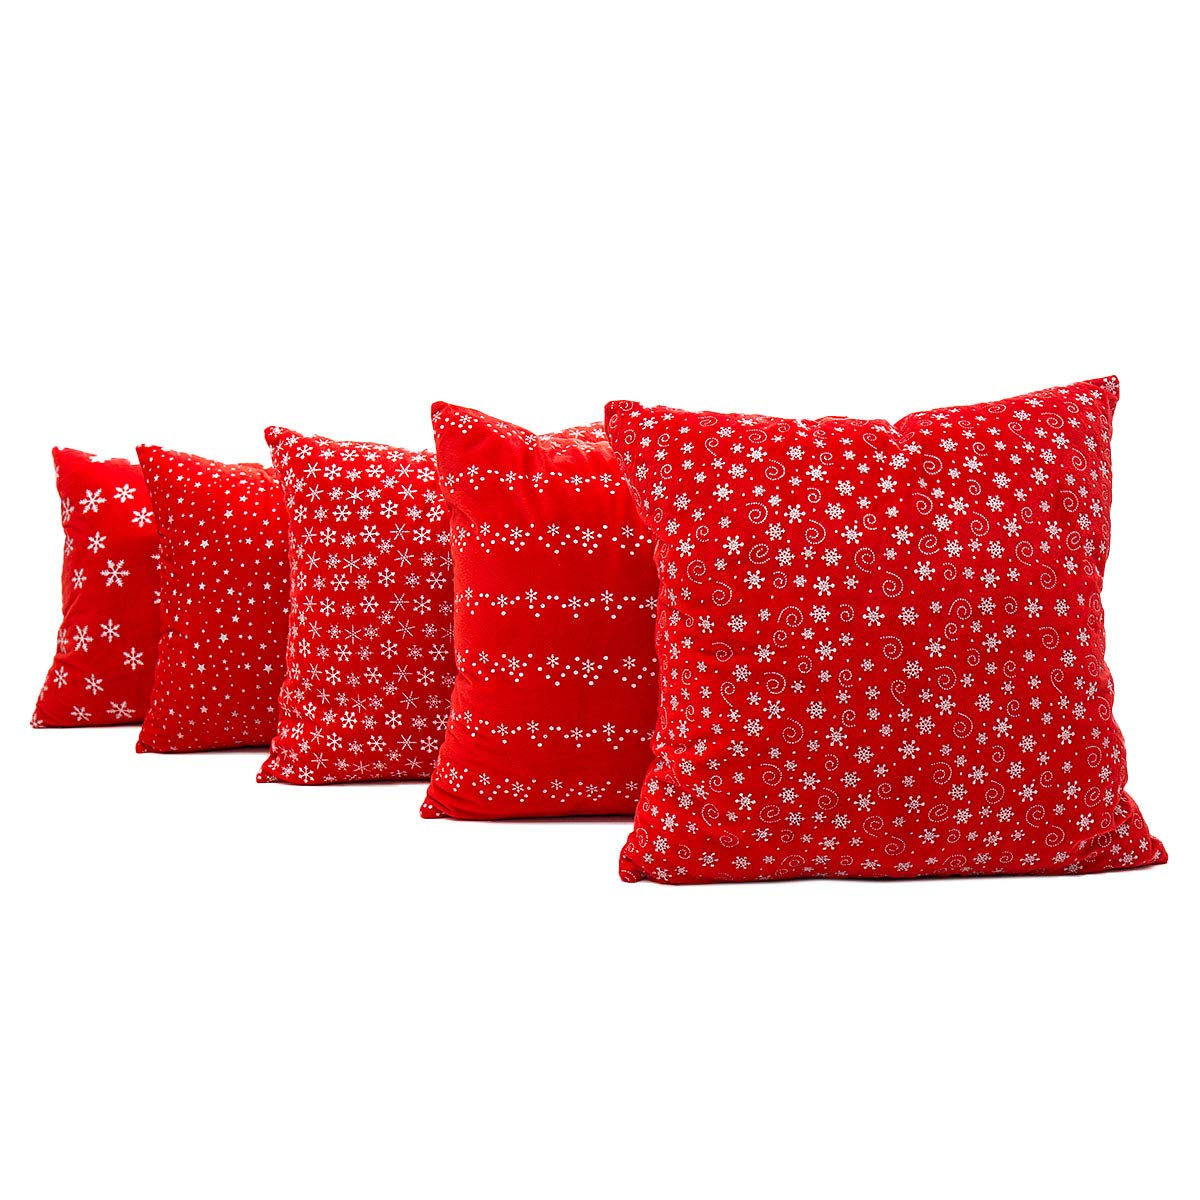 PSDWETS Christmas Decor Throw Pillow Set of 5 Cushion Cover 18 X 18, 18x18, Red Christmas Decorations Red Pillow